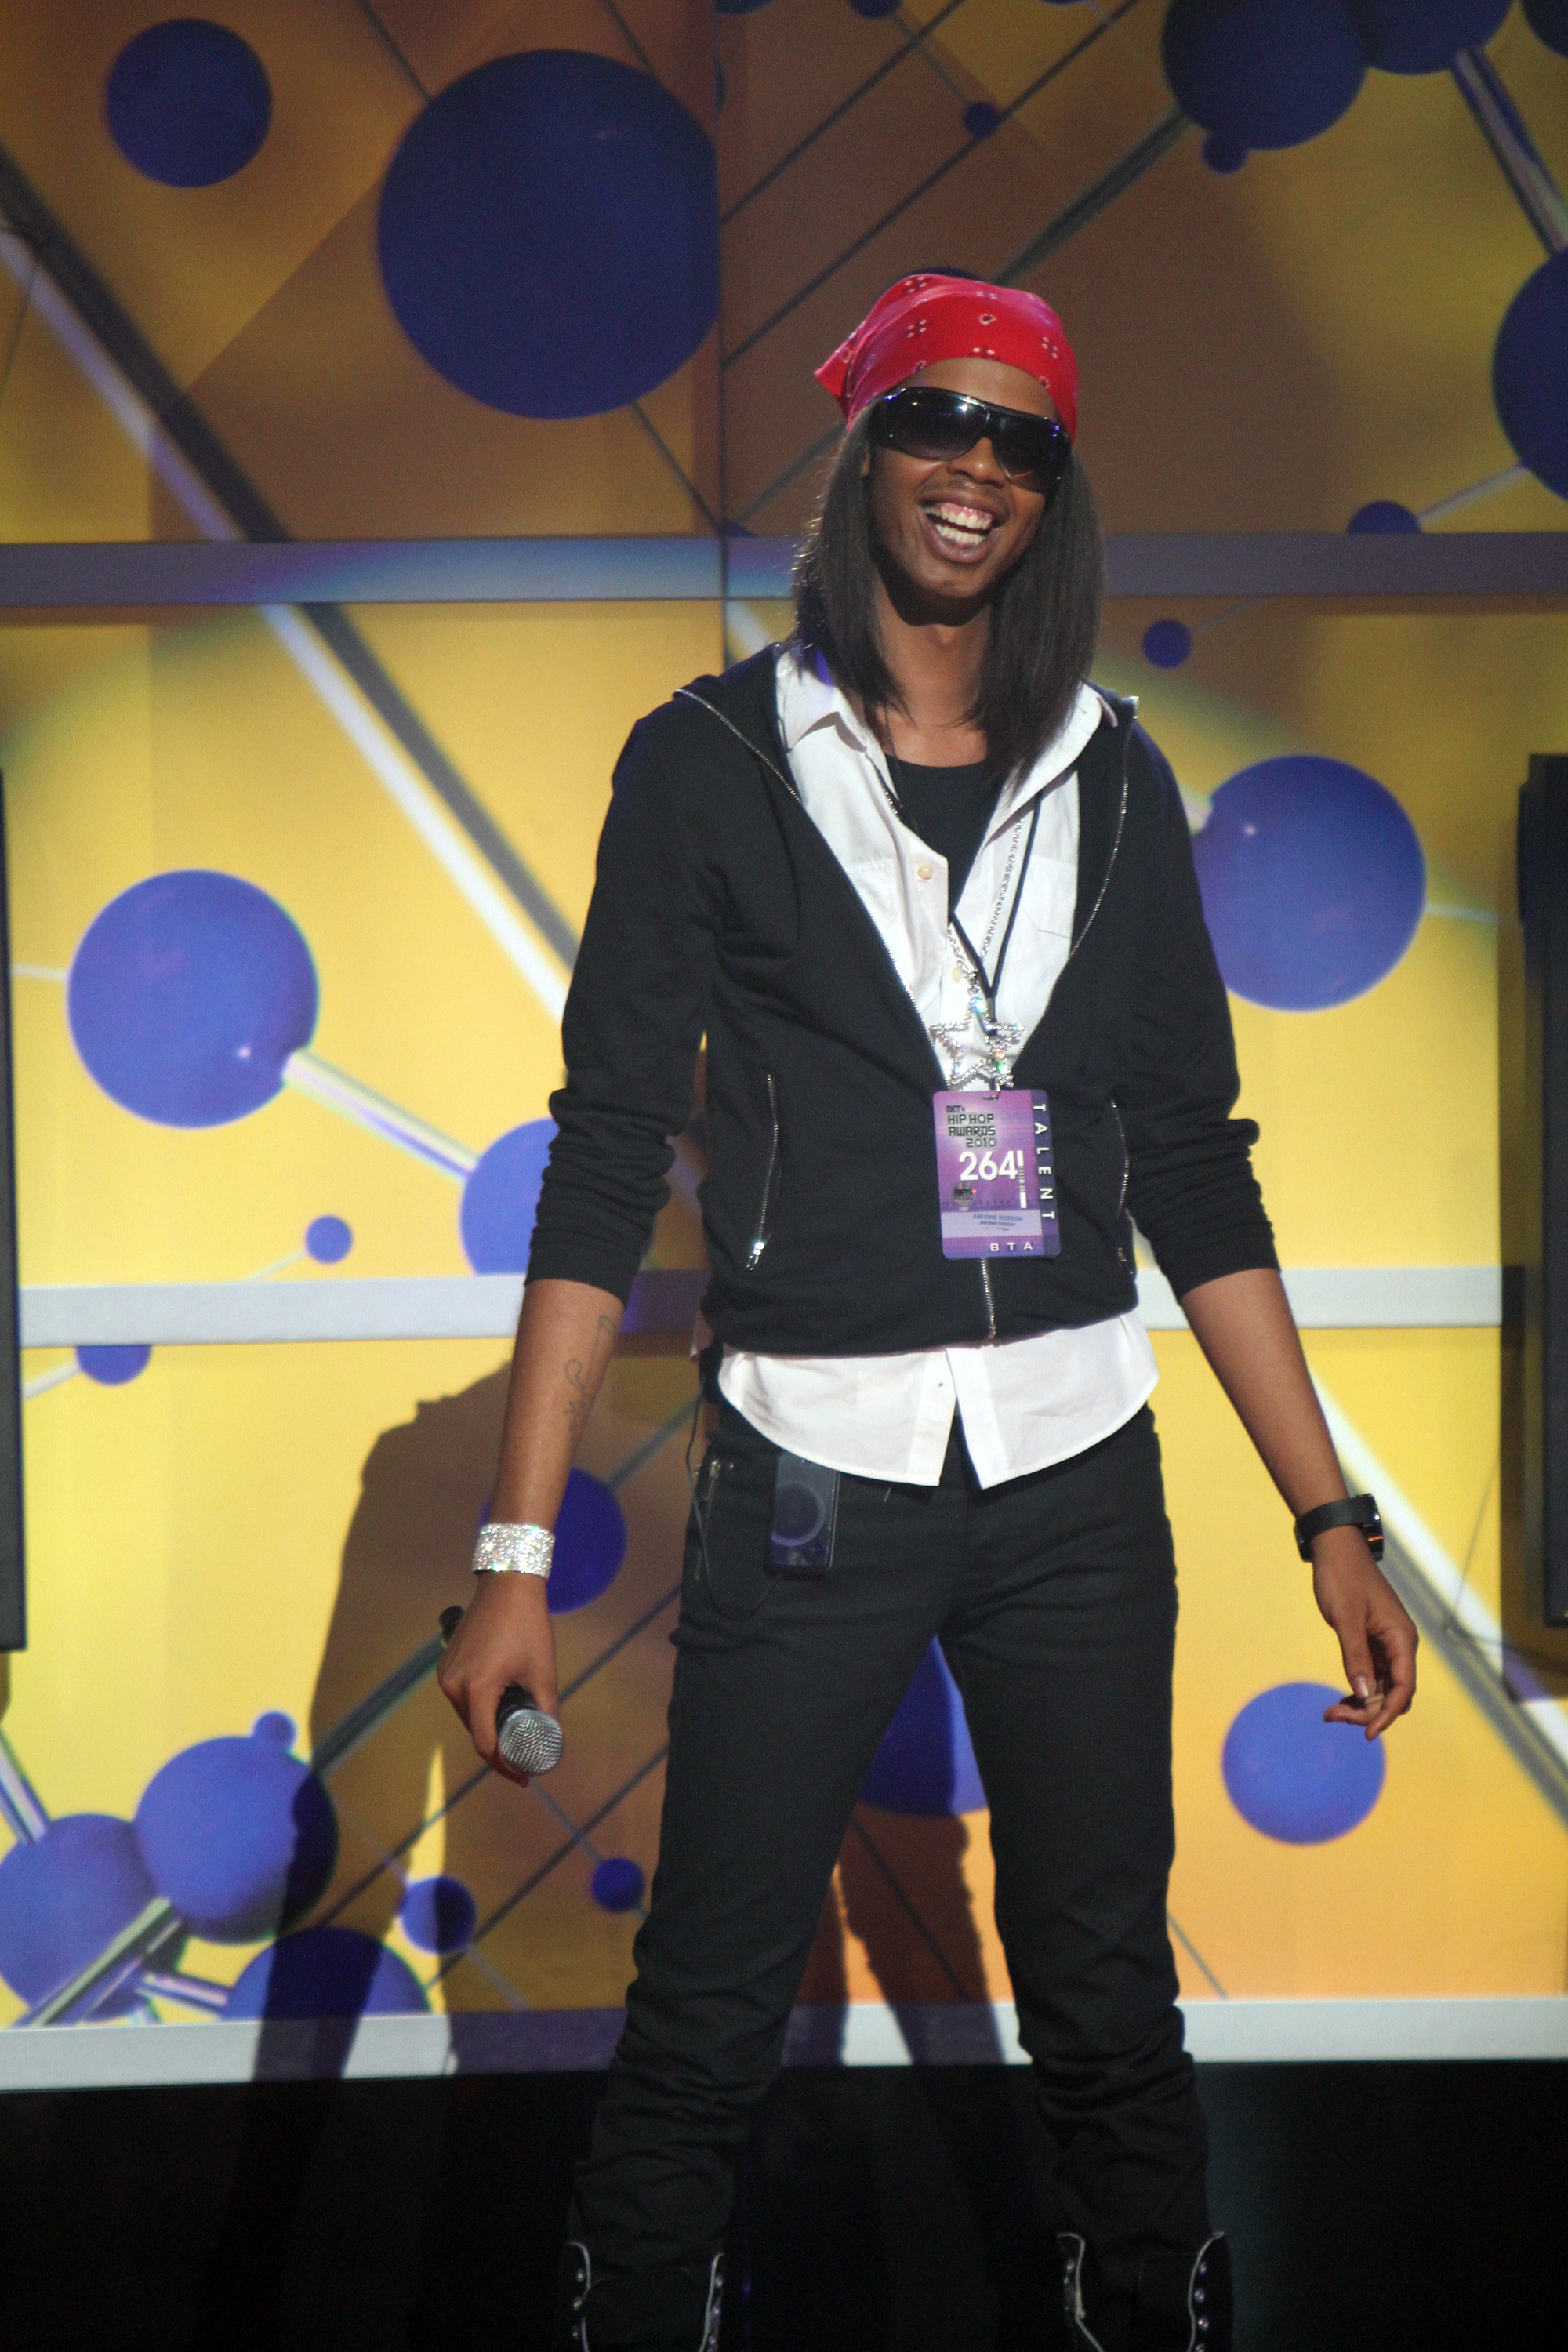 Antoine dodson on bet hip hop awards call of duty esports betting